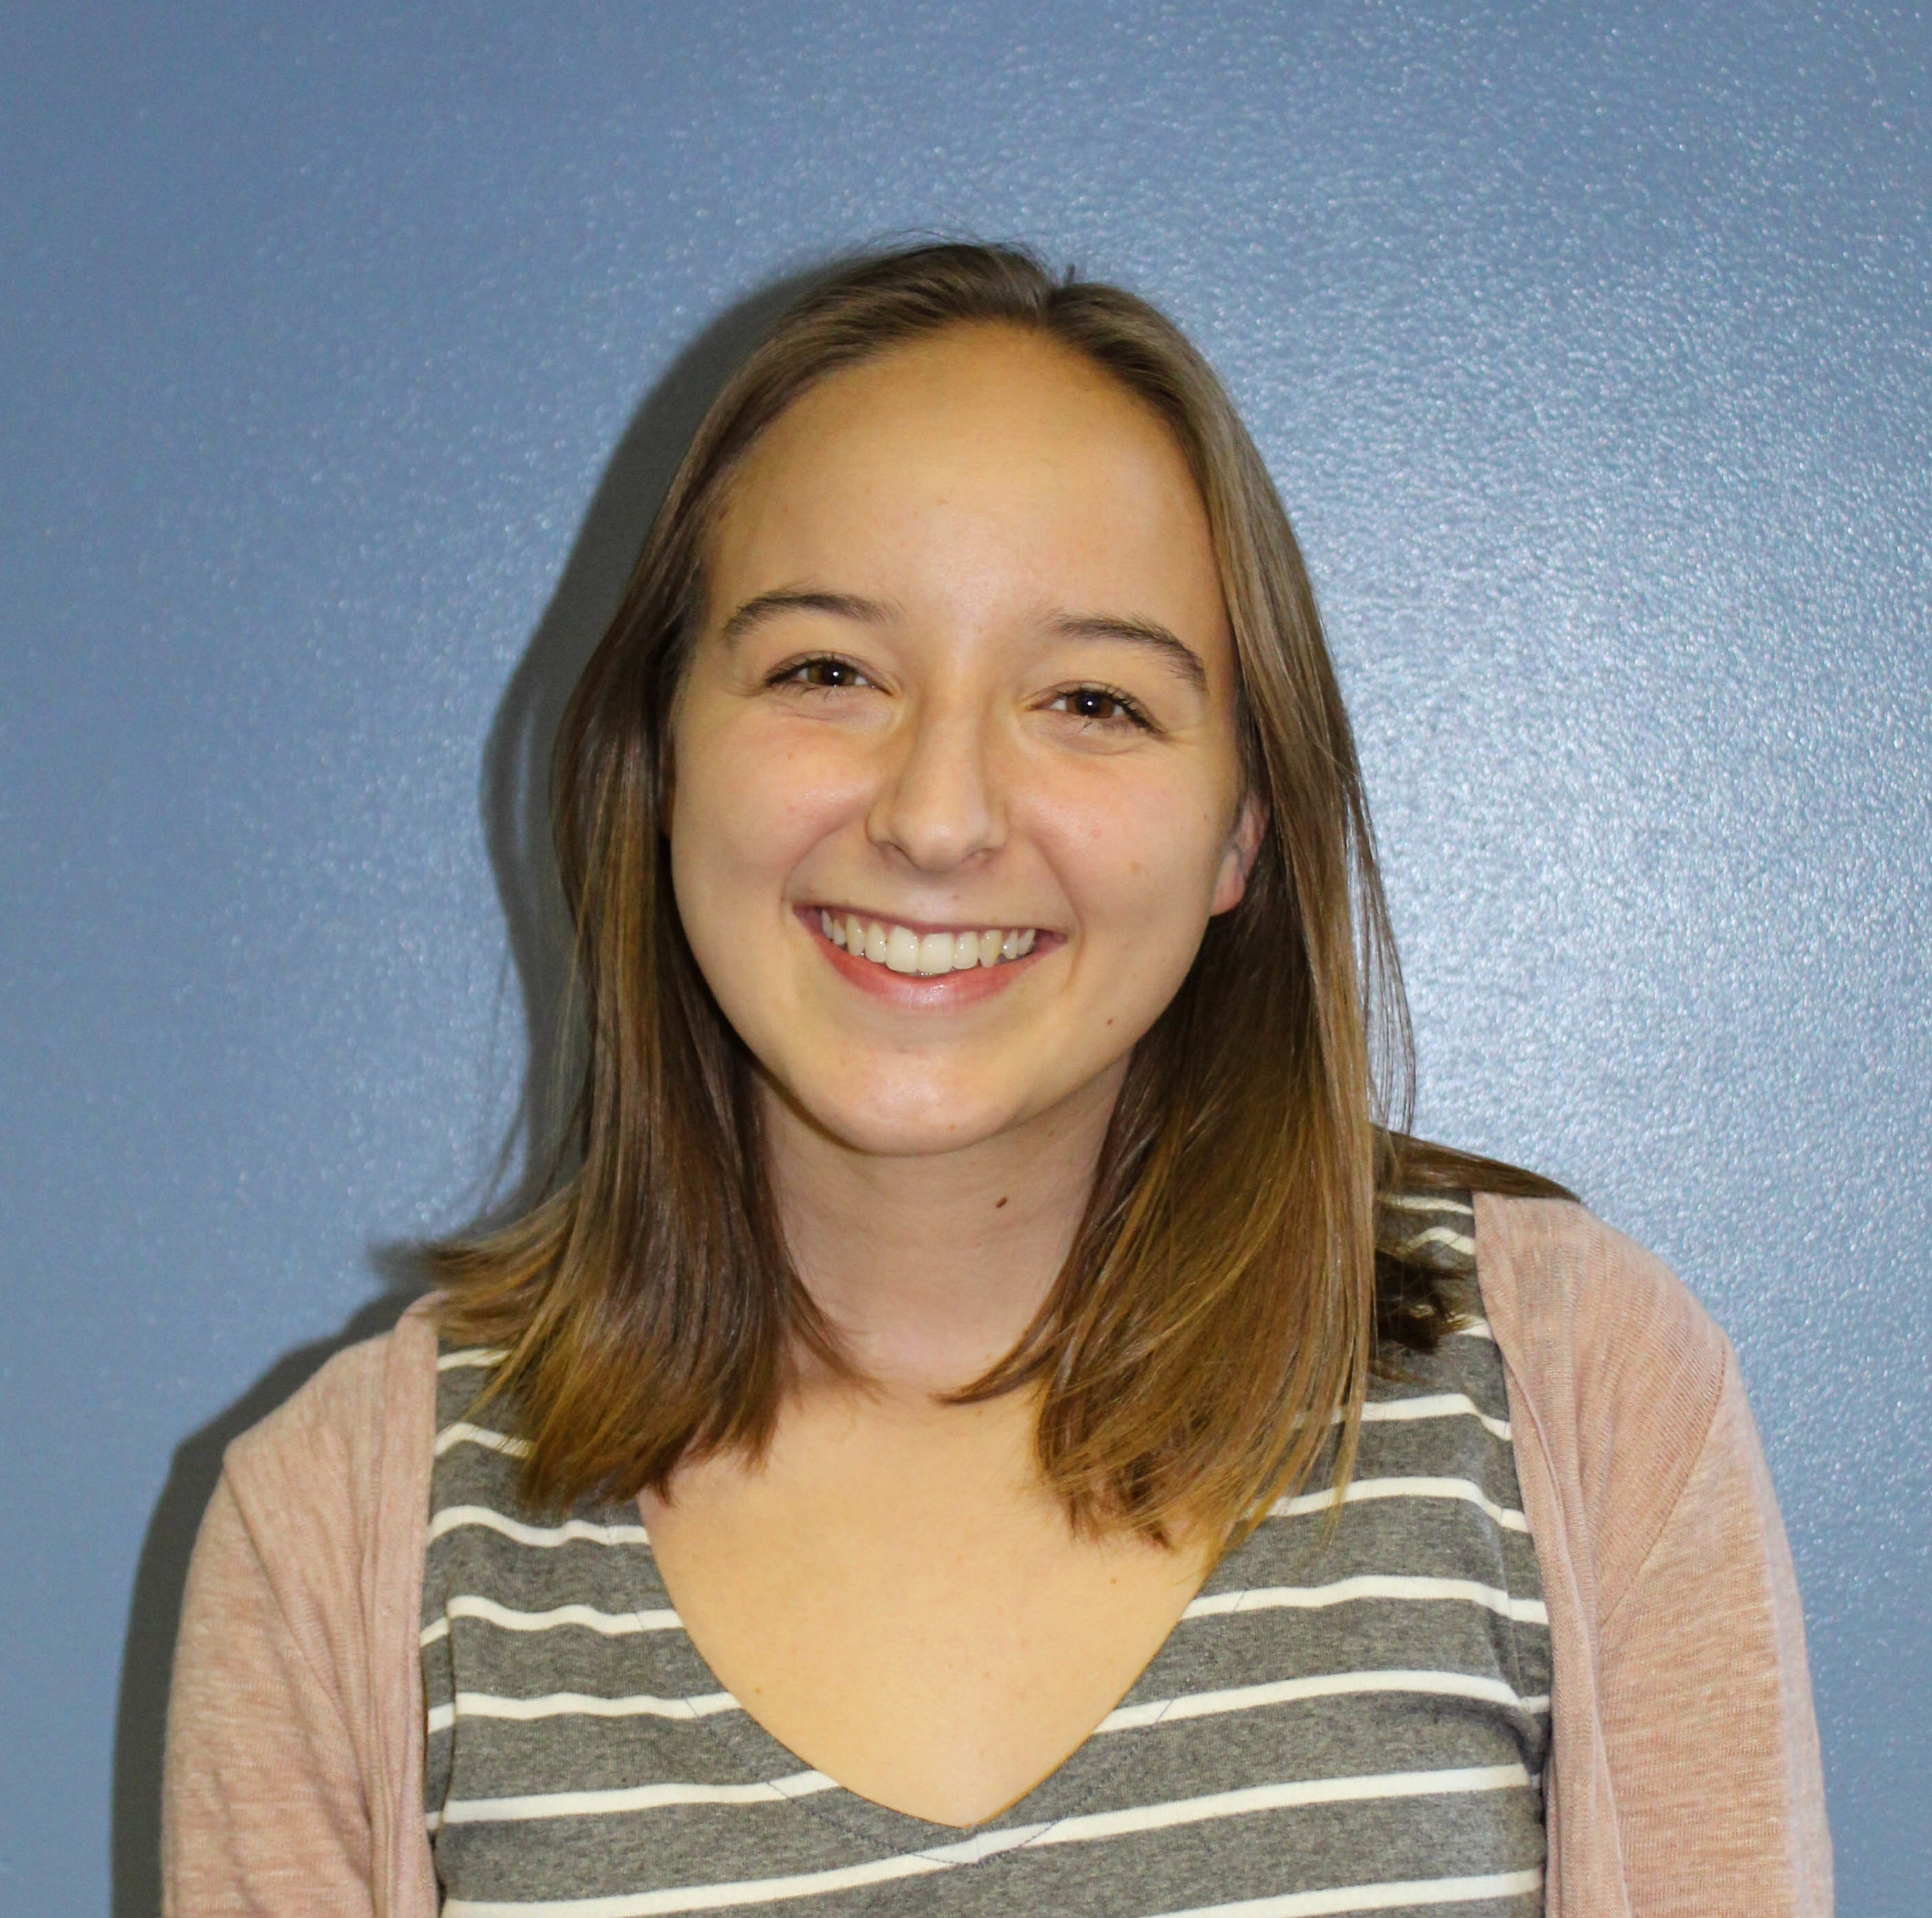 Anna Cincotta '21, Opinions Editor of The Gettysburgian